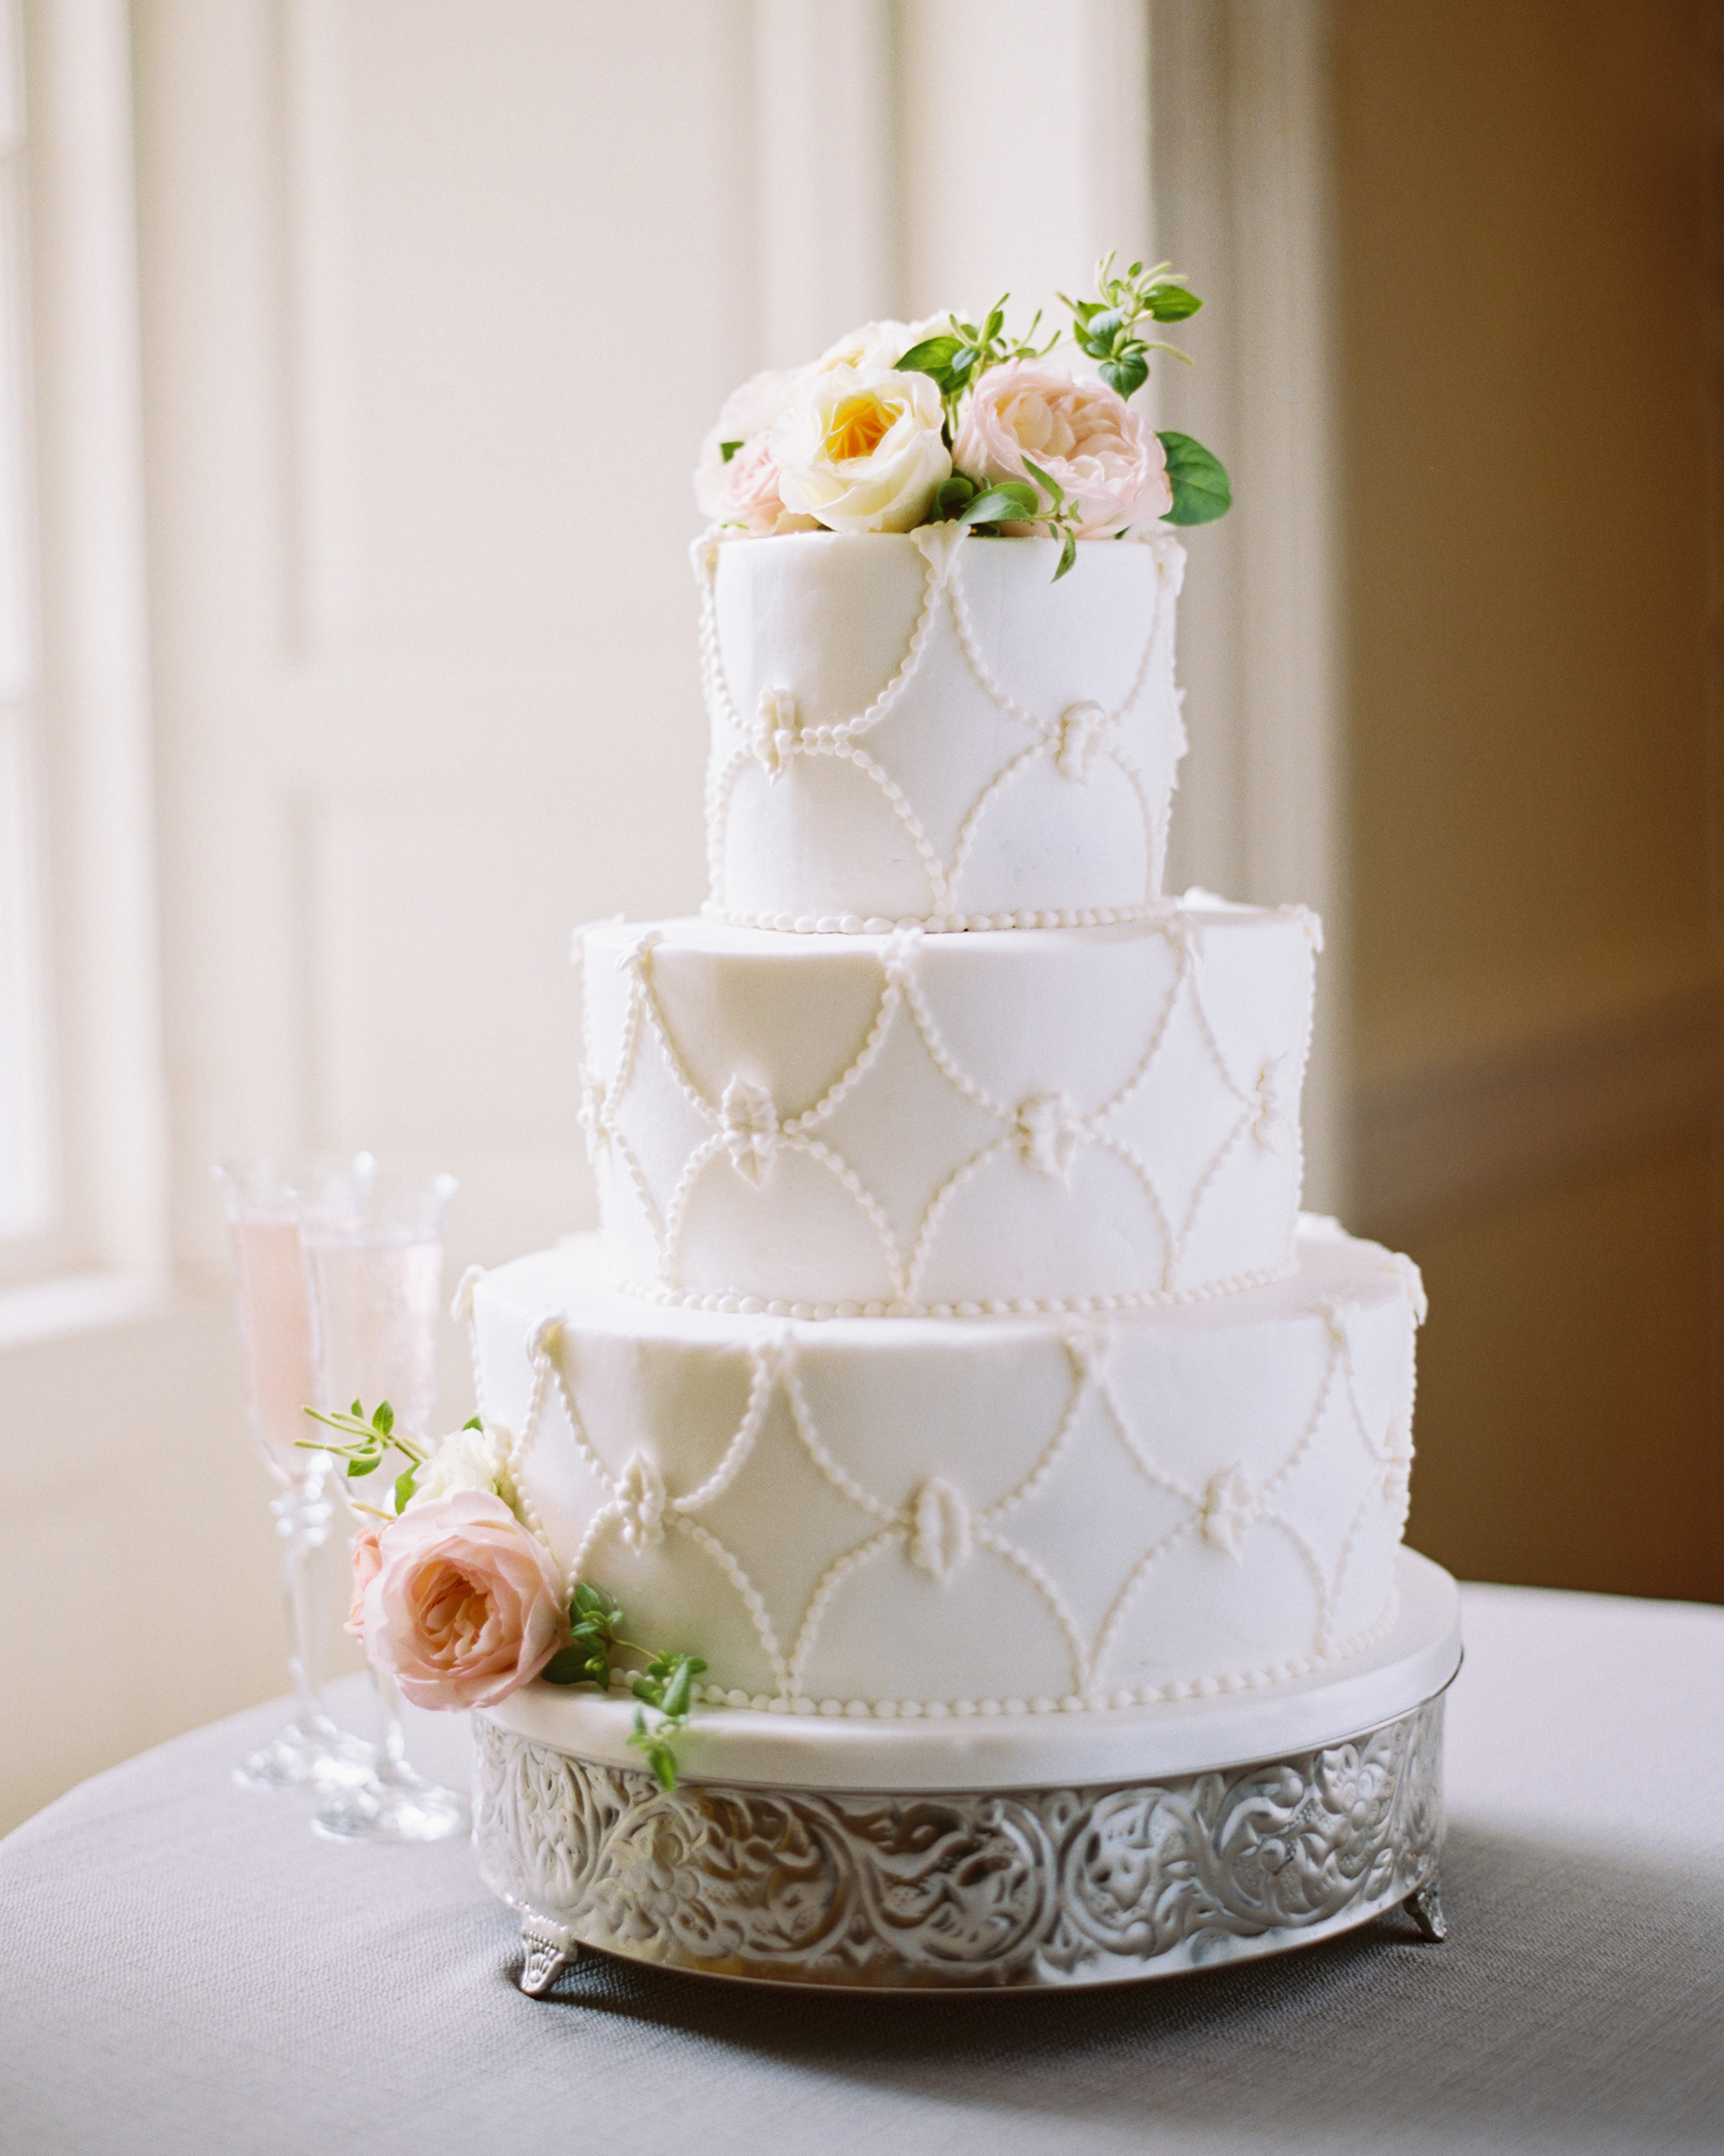 irby-adam-wedding-cake-24-s111660-1014.jpg